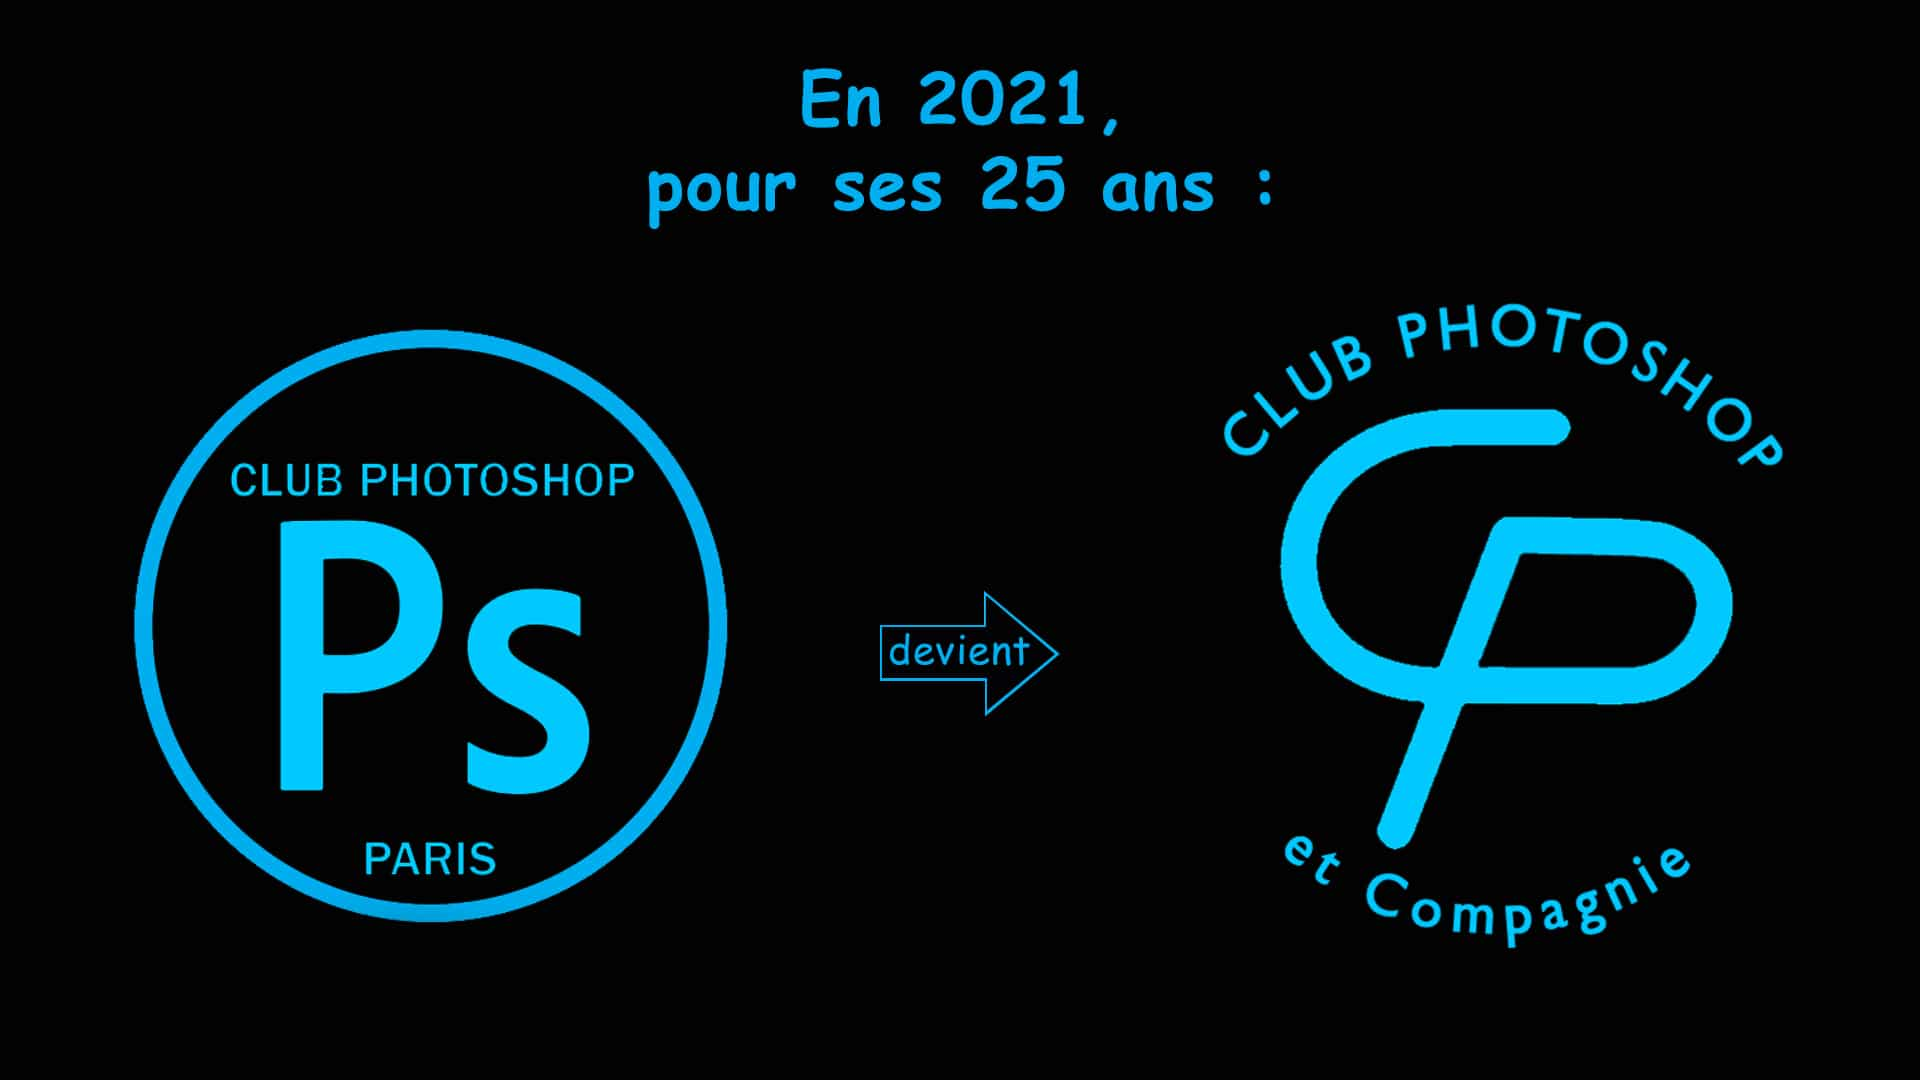 Le Club Photoshop Paris évolue